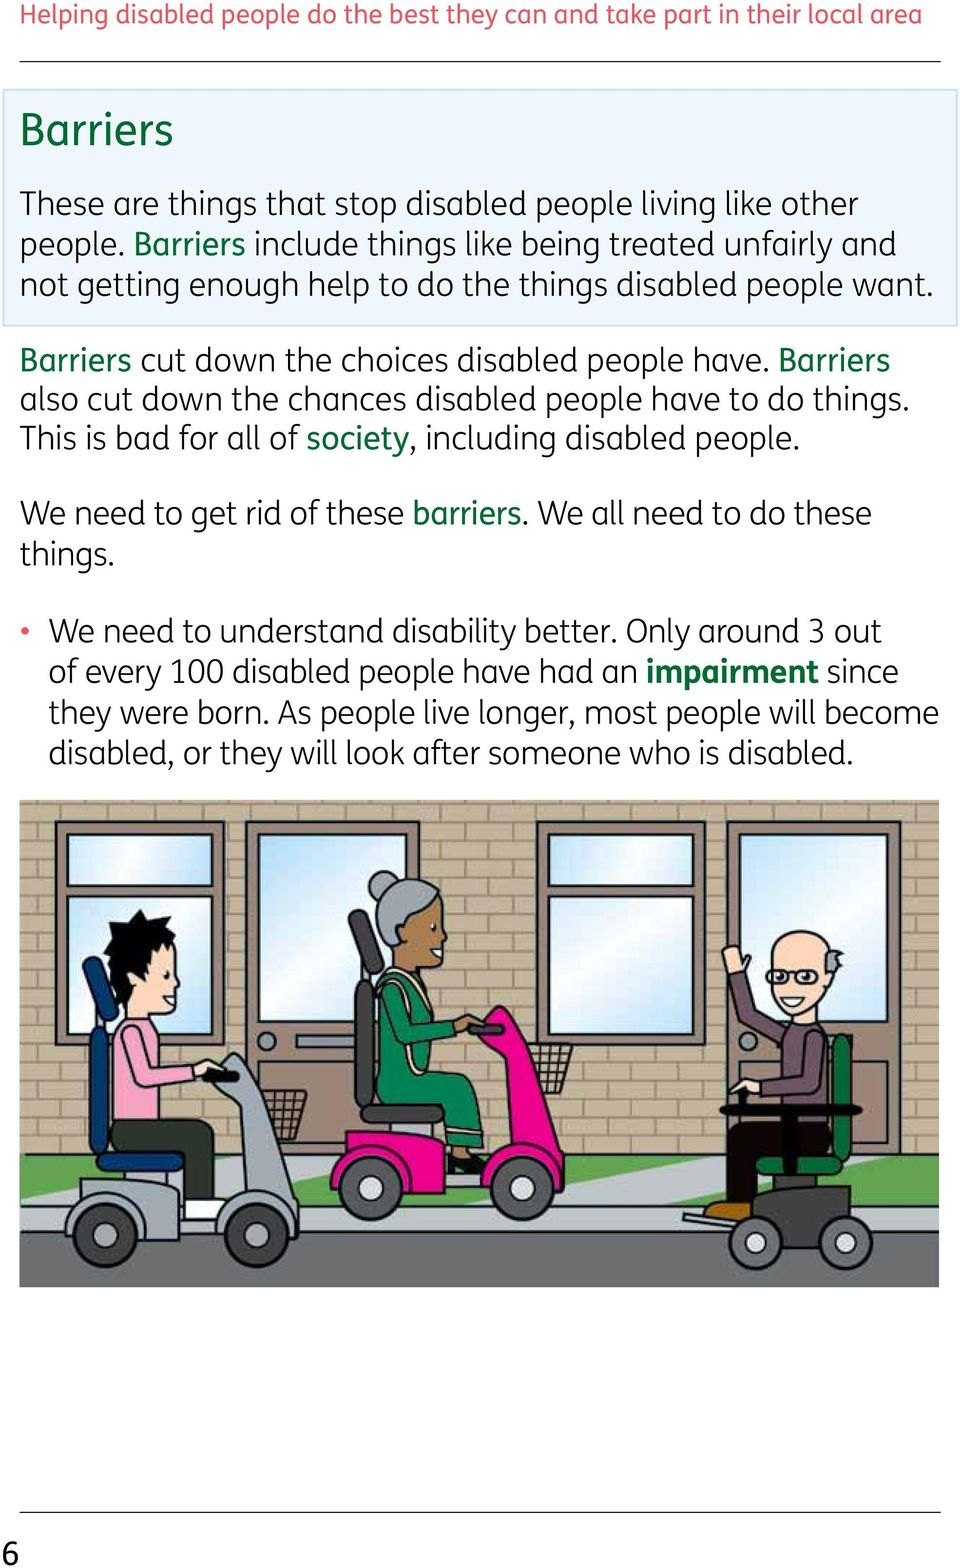 Barriers also cut down the chances disabled people have to do things. This is bad for all of society, including disabled people. We need to get rid of these barriers.